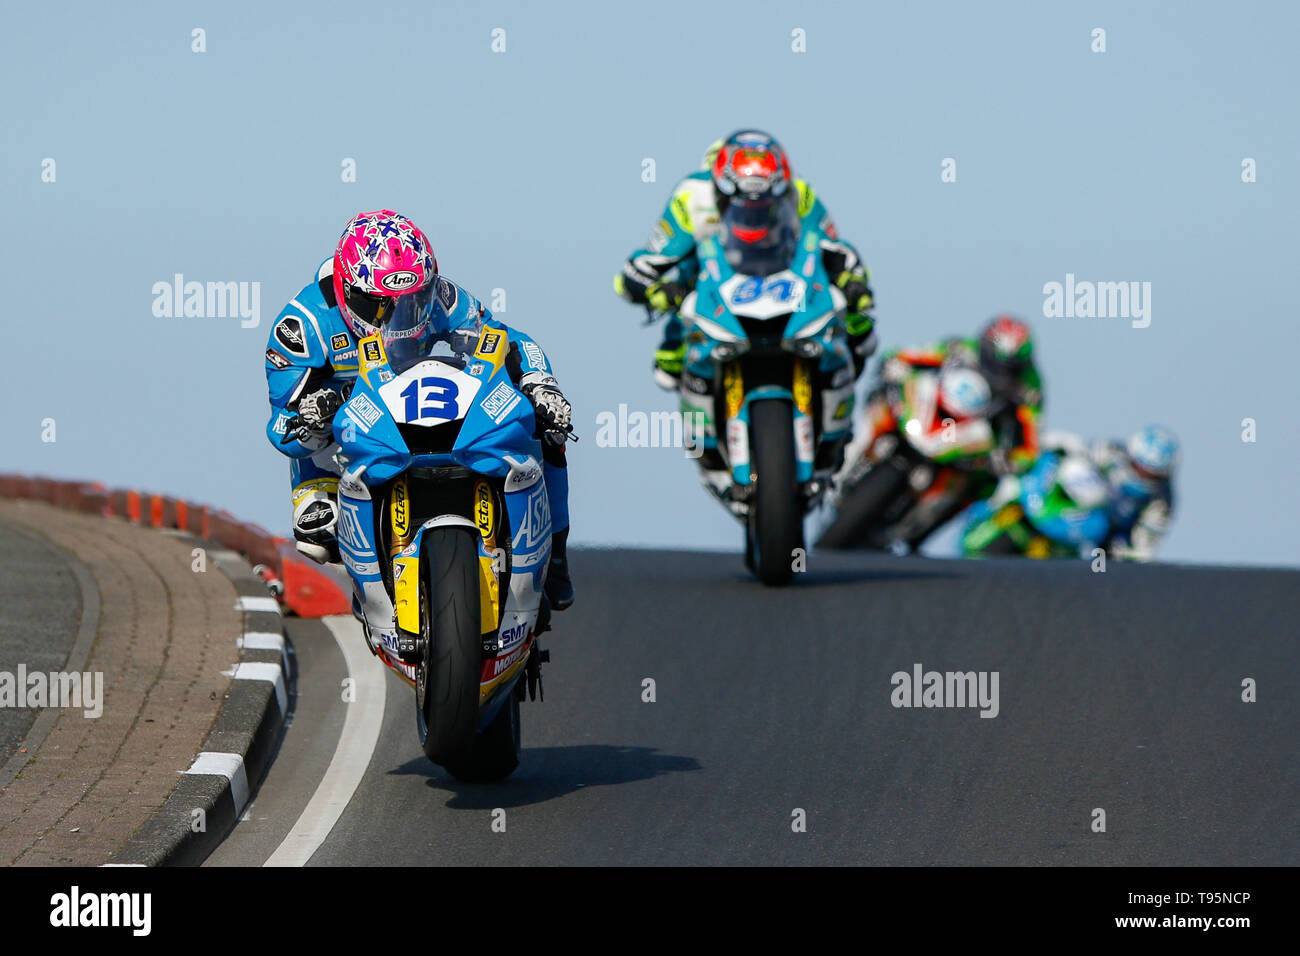 Portrush, Northern Ireland. 16th May, 2019. International North West 200 Motorcycle road racing, Thursday practice and evening racing; Lee Johnston wins the opening SuperSport race on the Ashcourt Racing Yamaha, ahead of Dean Harrison (Silicone Engineering Racing Kawasaki) and James Hillier (Quattro Plant Wicked Coatings Kawasaki) Credit: Action Plus Sports/Alamy Live News - Stock Image